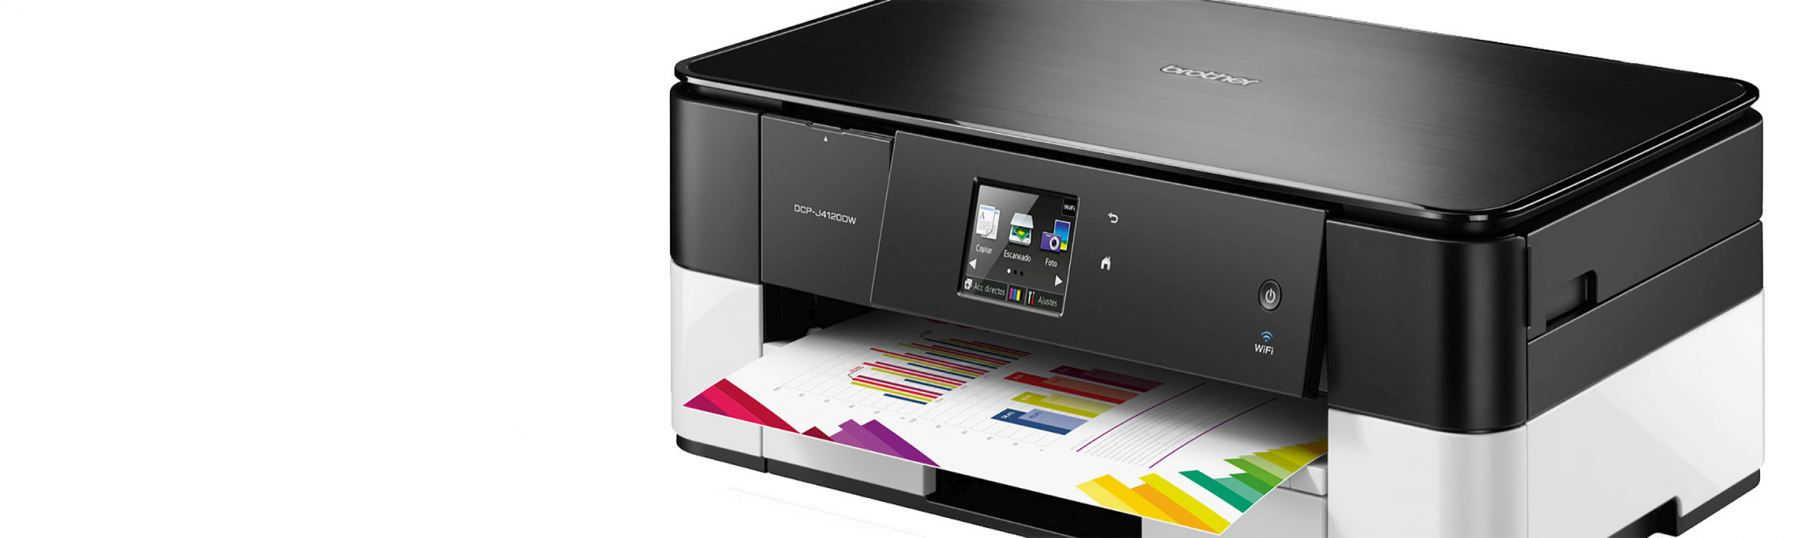 8-inkjet-printers-brother-our-products-DCP-J4120DW